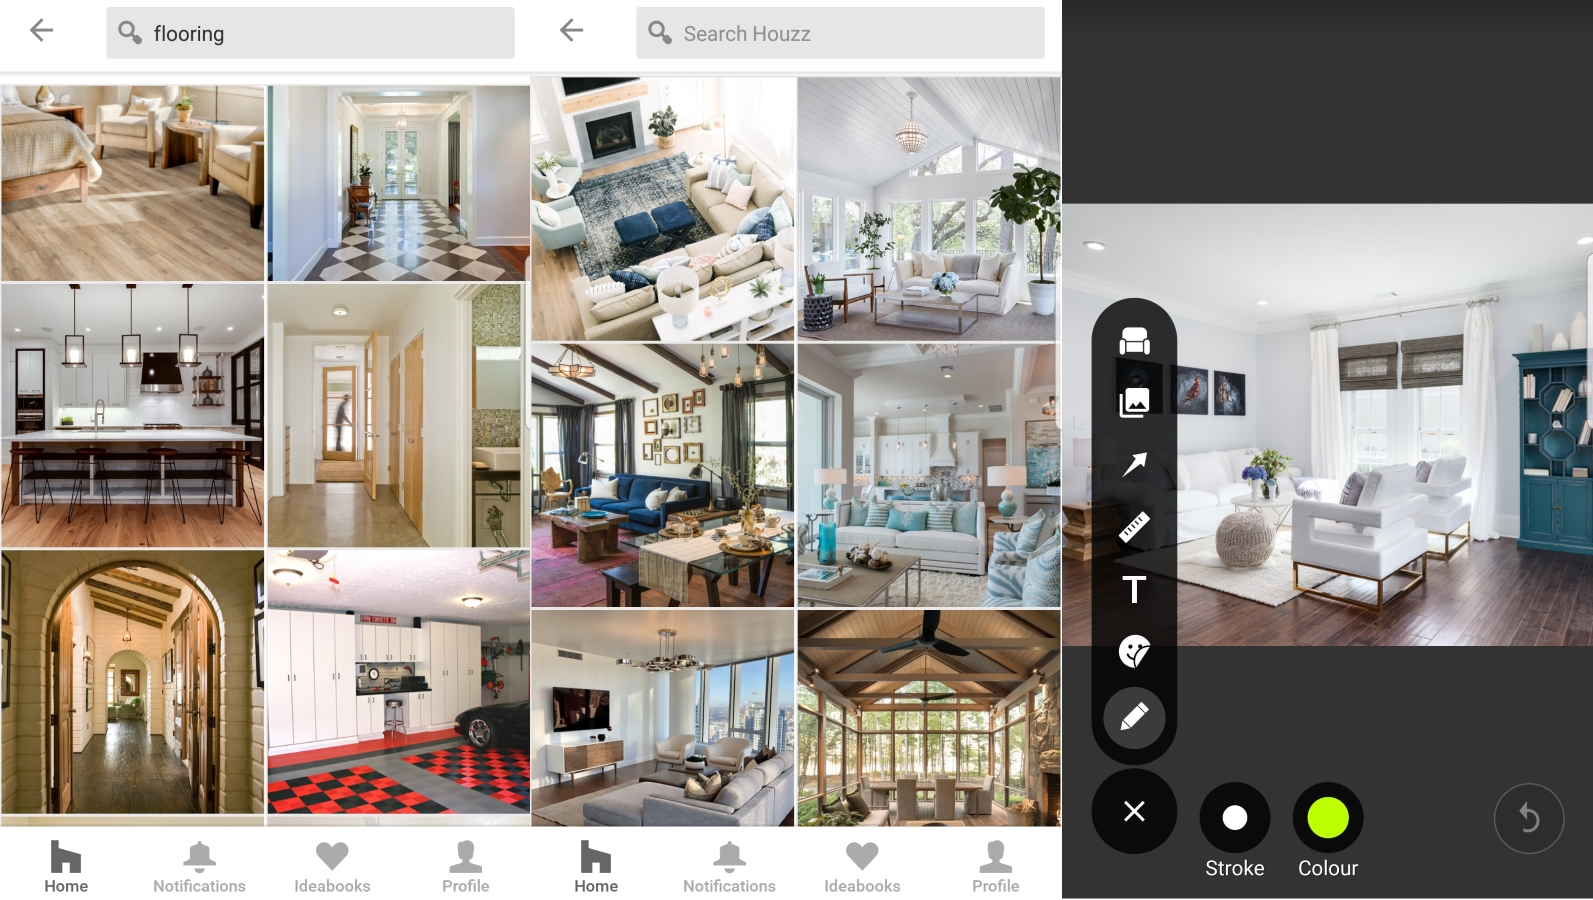 The 10 Best Floor Plan Apps For Android, IPhone, And IPad